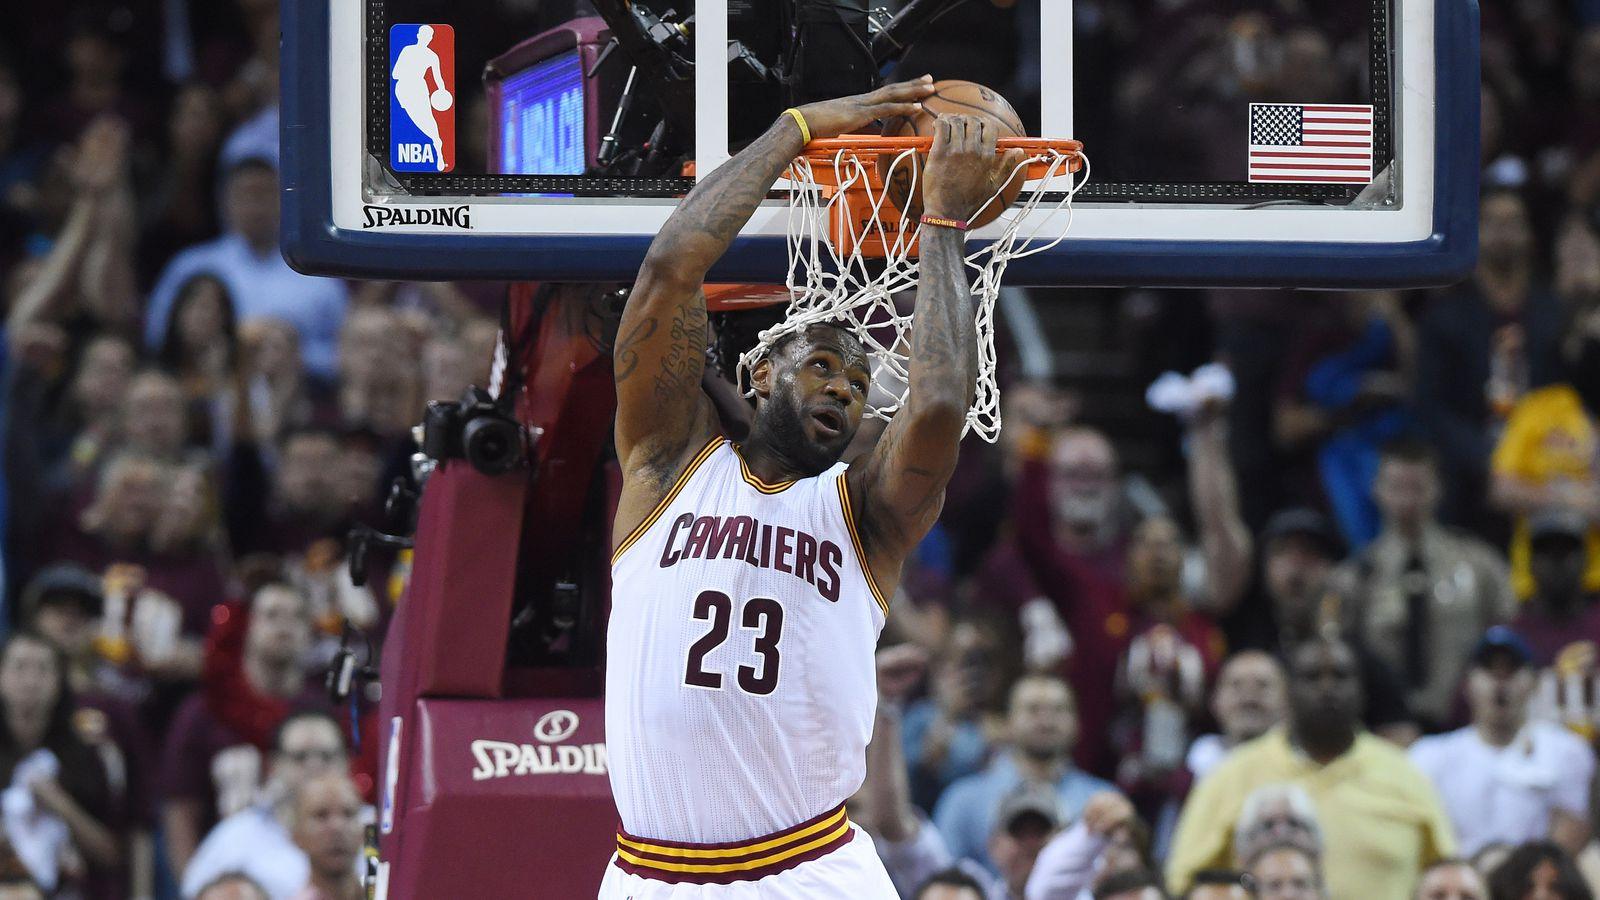 Warriors vs. Cavaliers 2016 final score: Cleveland breathes life into NBA Finals with 120-90 win ...